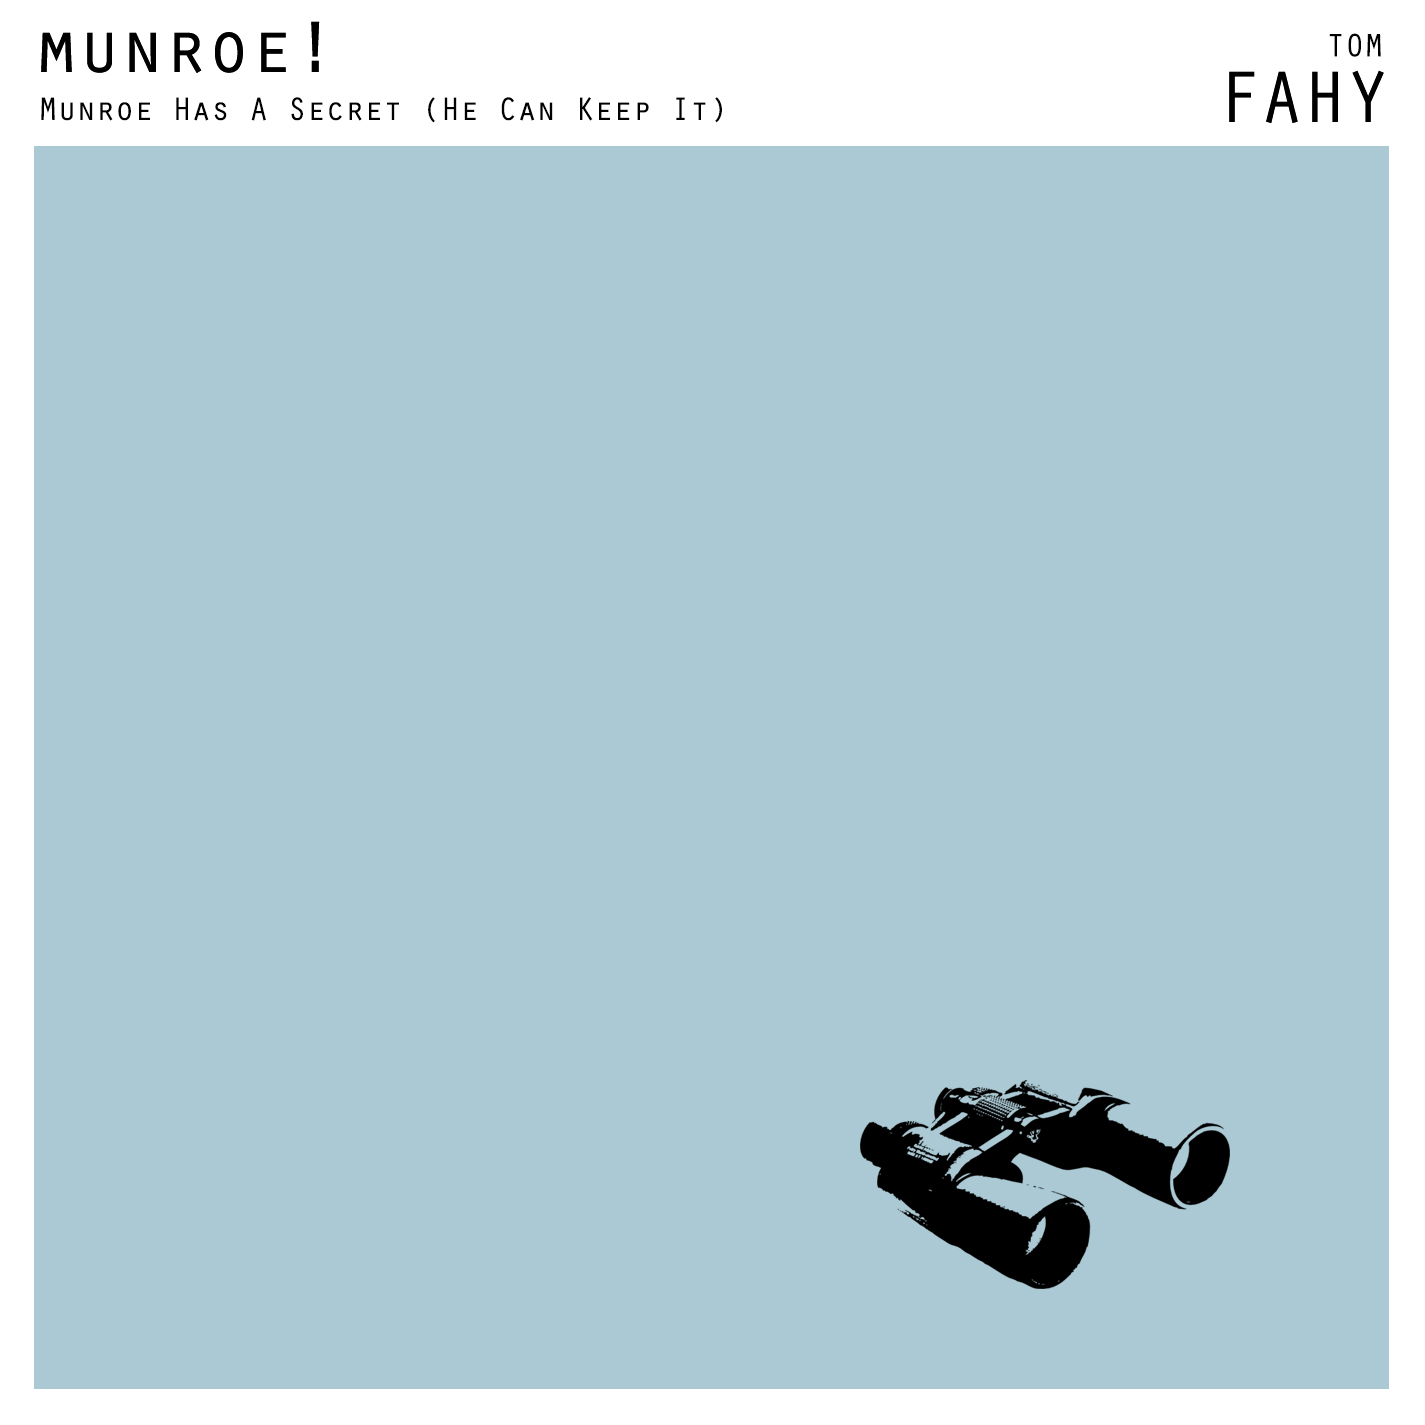 Munroe! by Tom Fahy